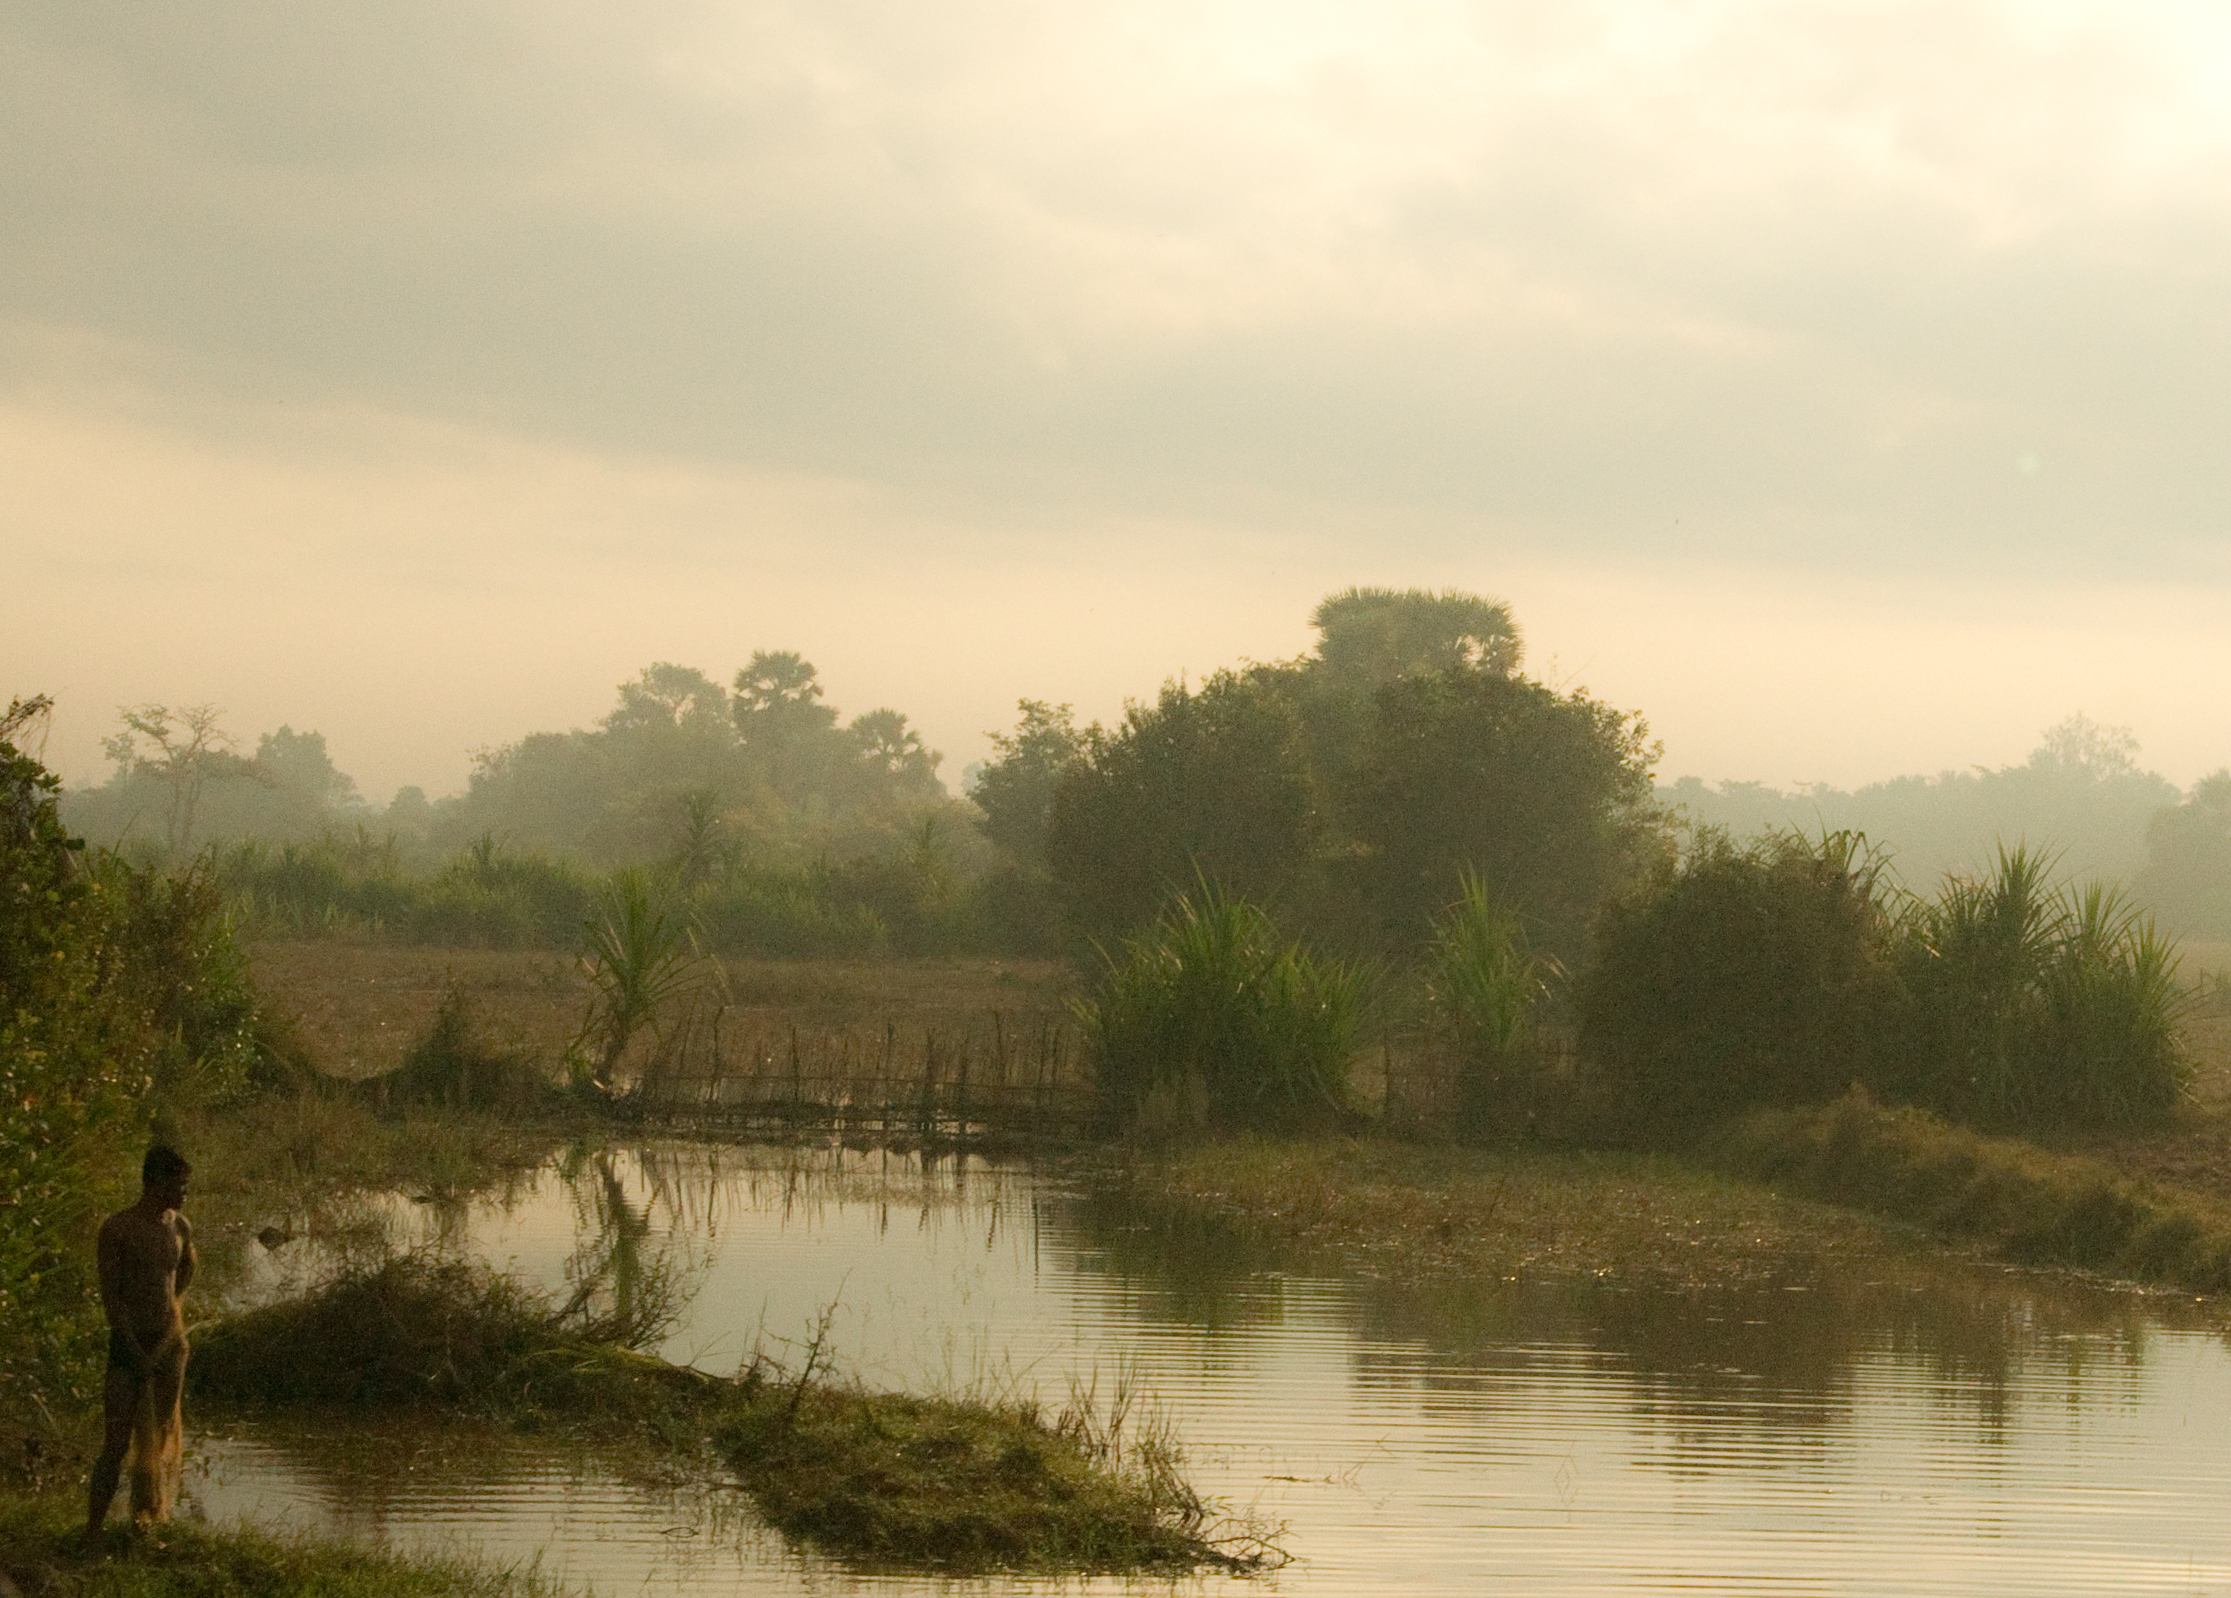 Early Rise (Cambodia)